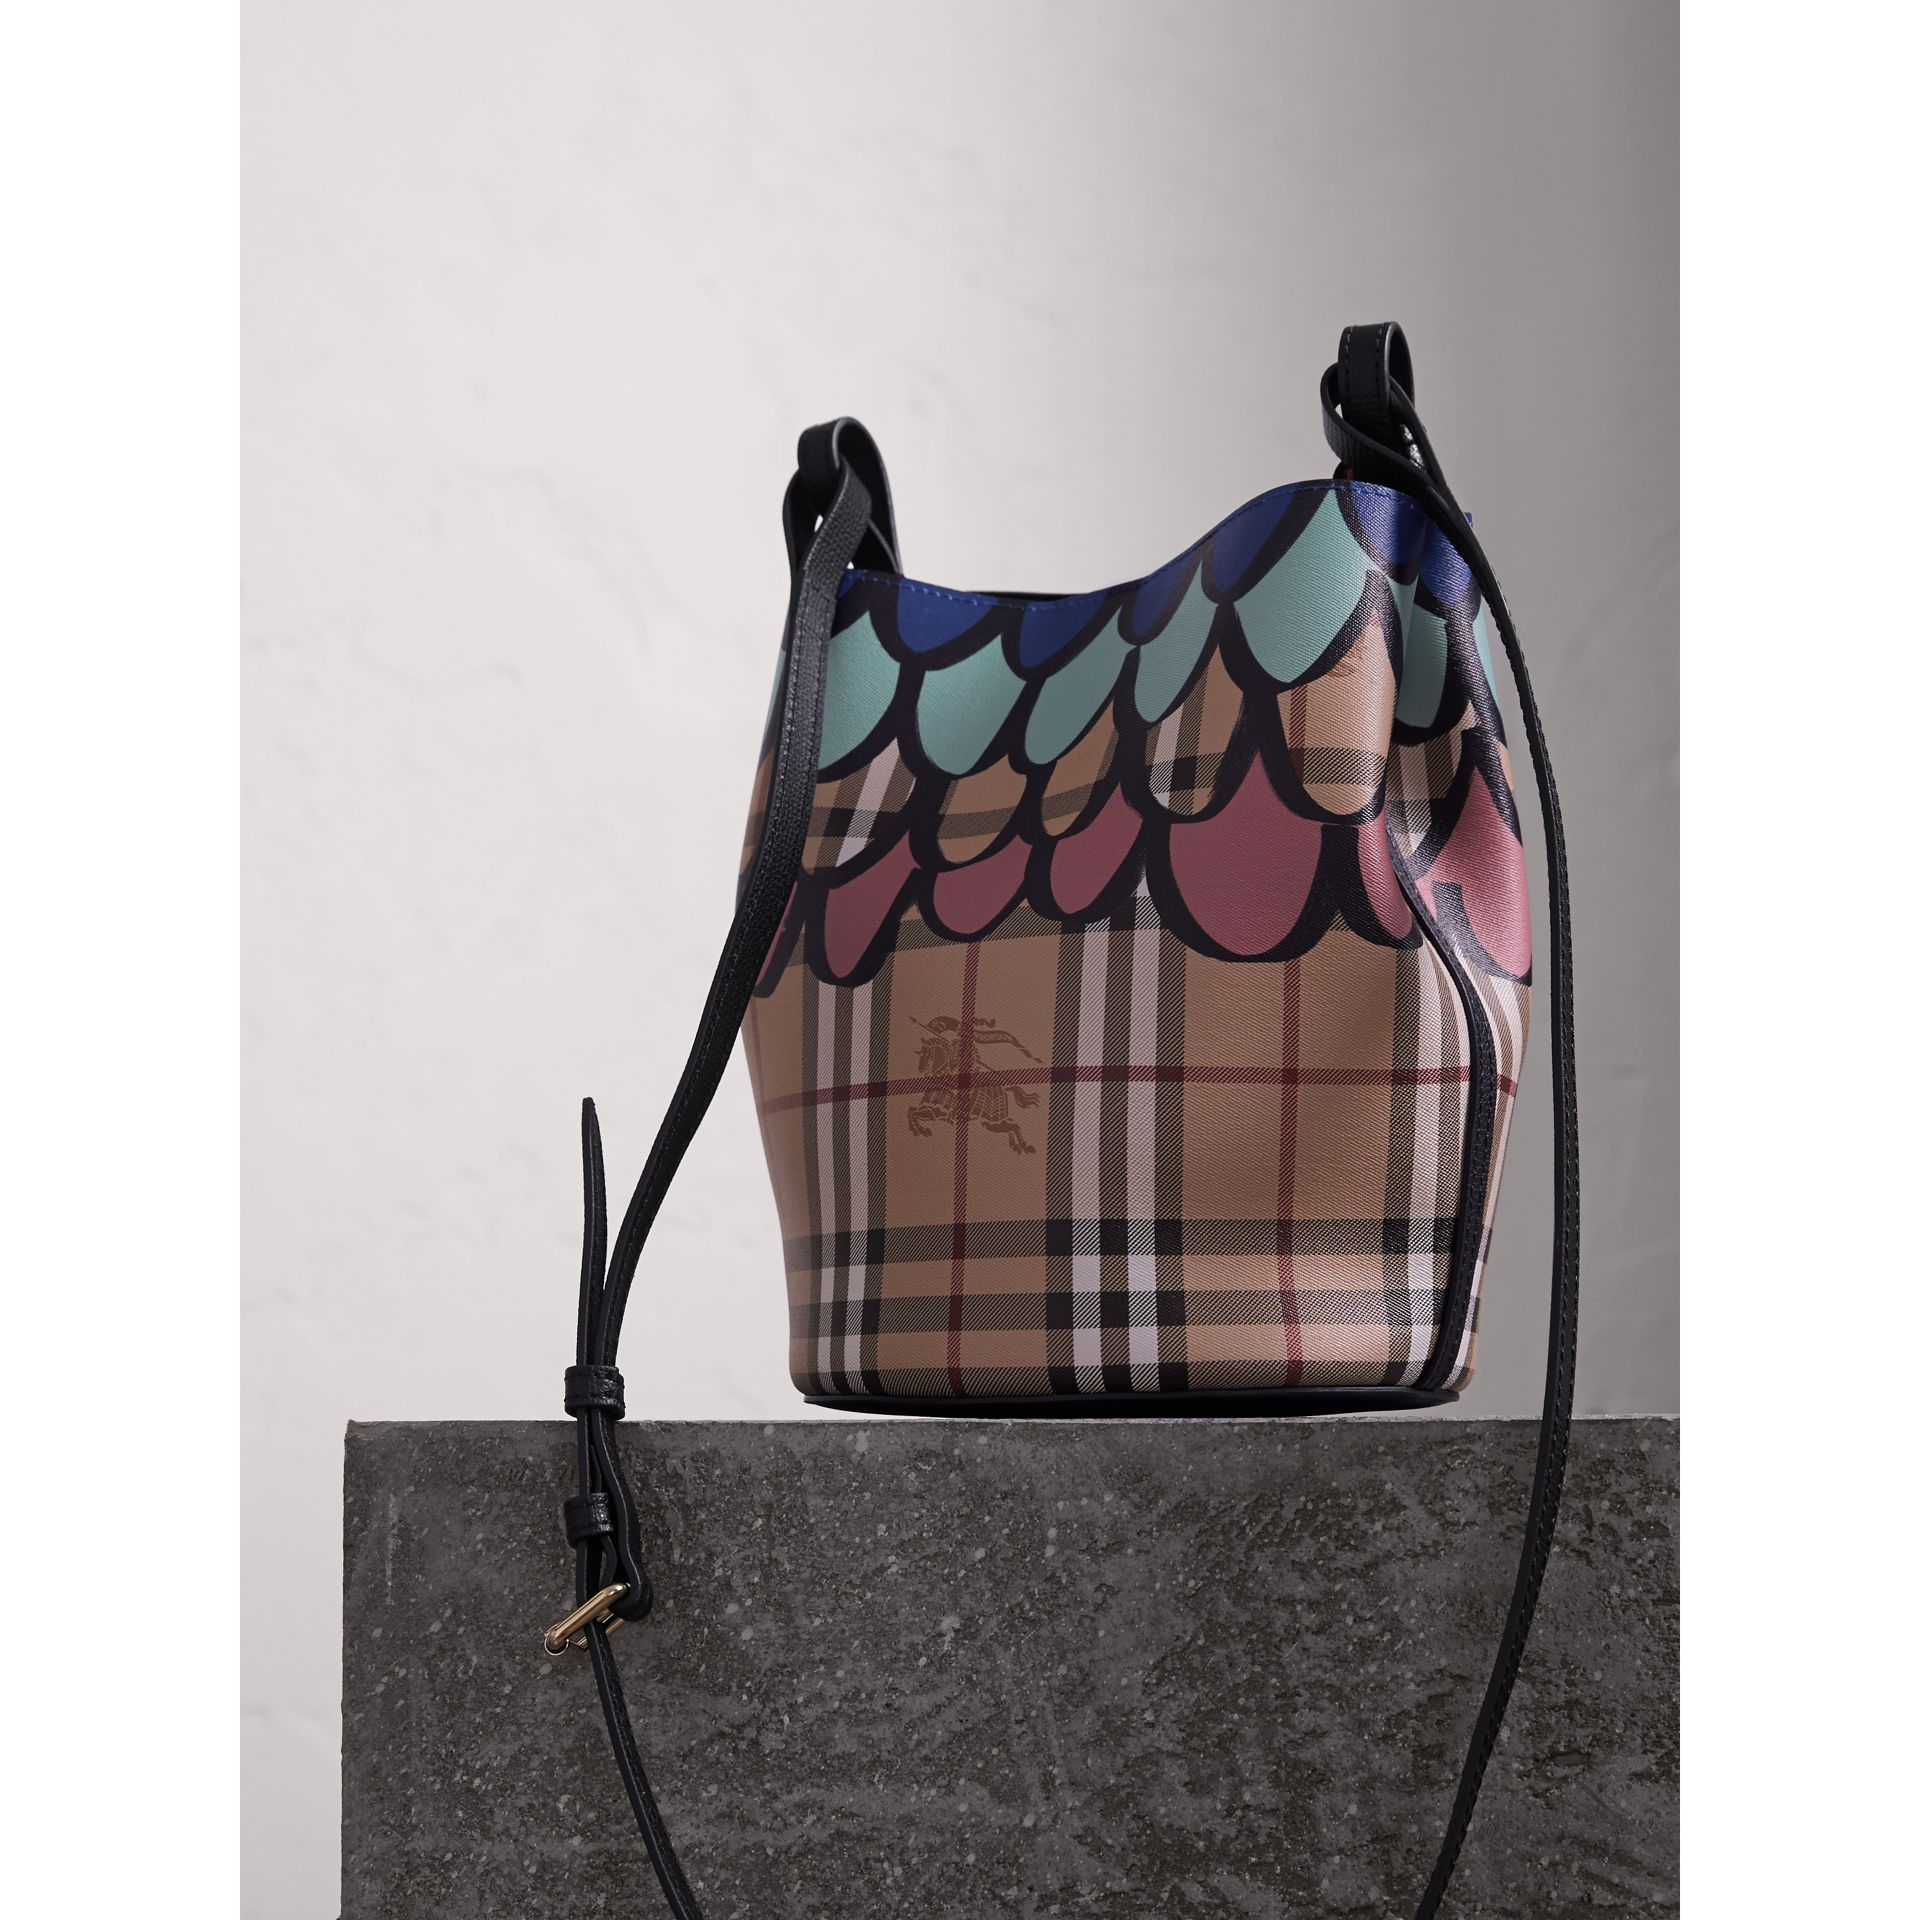 Trompe L'oeil Print Crossbody Bucket Bag in Black - Women | Burberry - gallery image 4